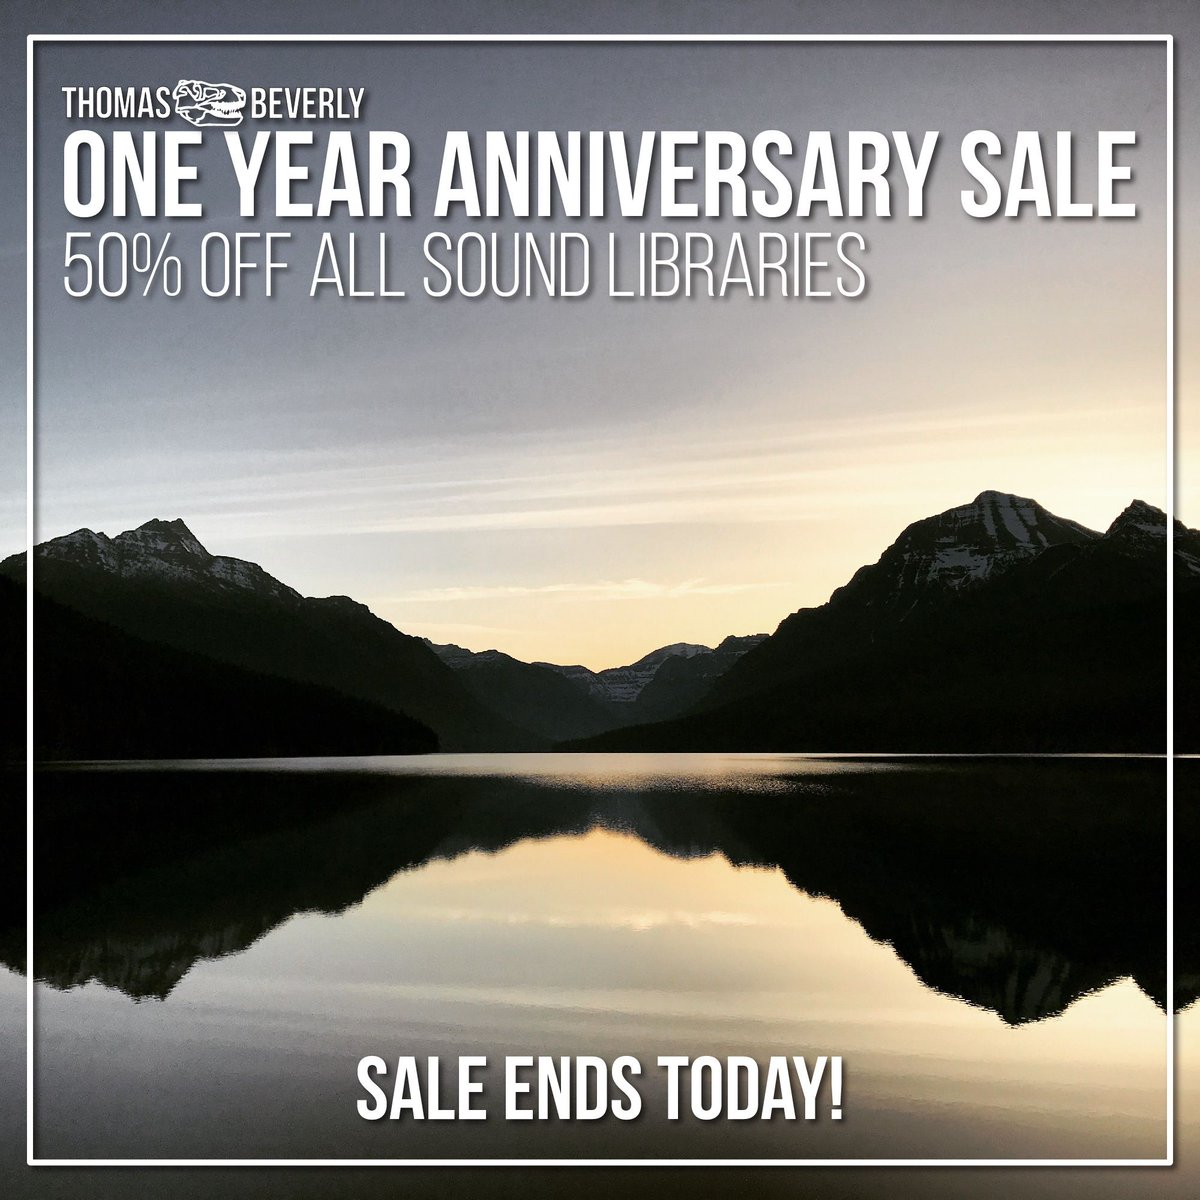 Sale Ends Today! One Year Anniversary Sale – 50% off all sound libraries. #sounddesign #GameAudio #gamedev #sfx  https:// thomasrexbeverly.com / &nbsp;  <br>http://pic.twitter.com/lCIH0aHZDi